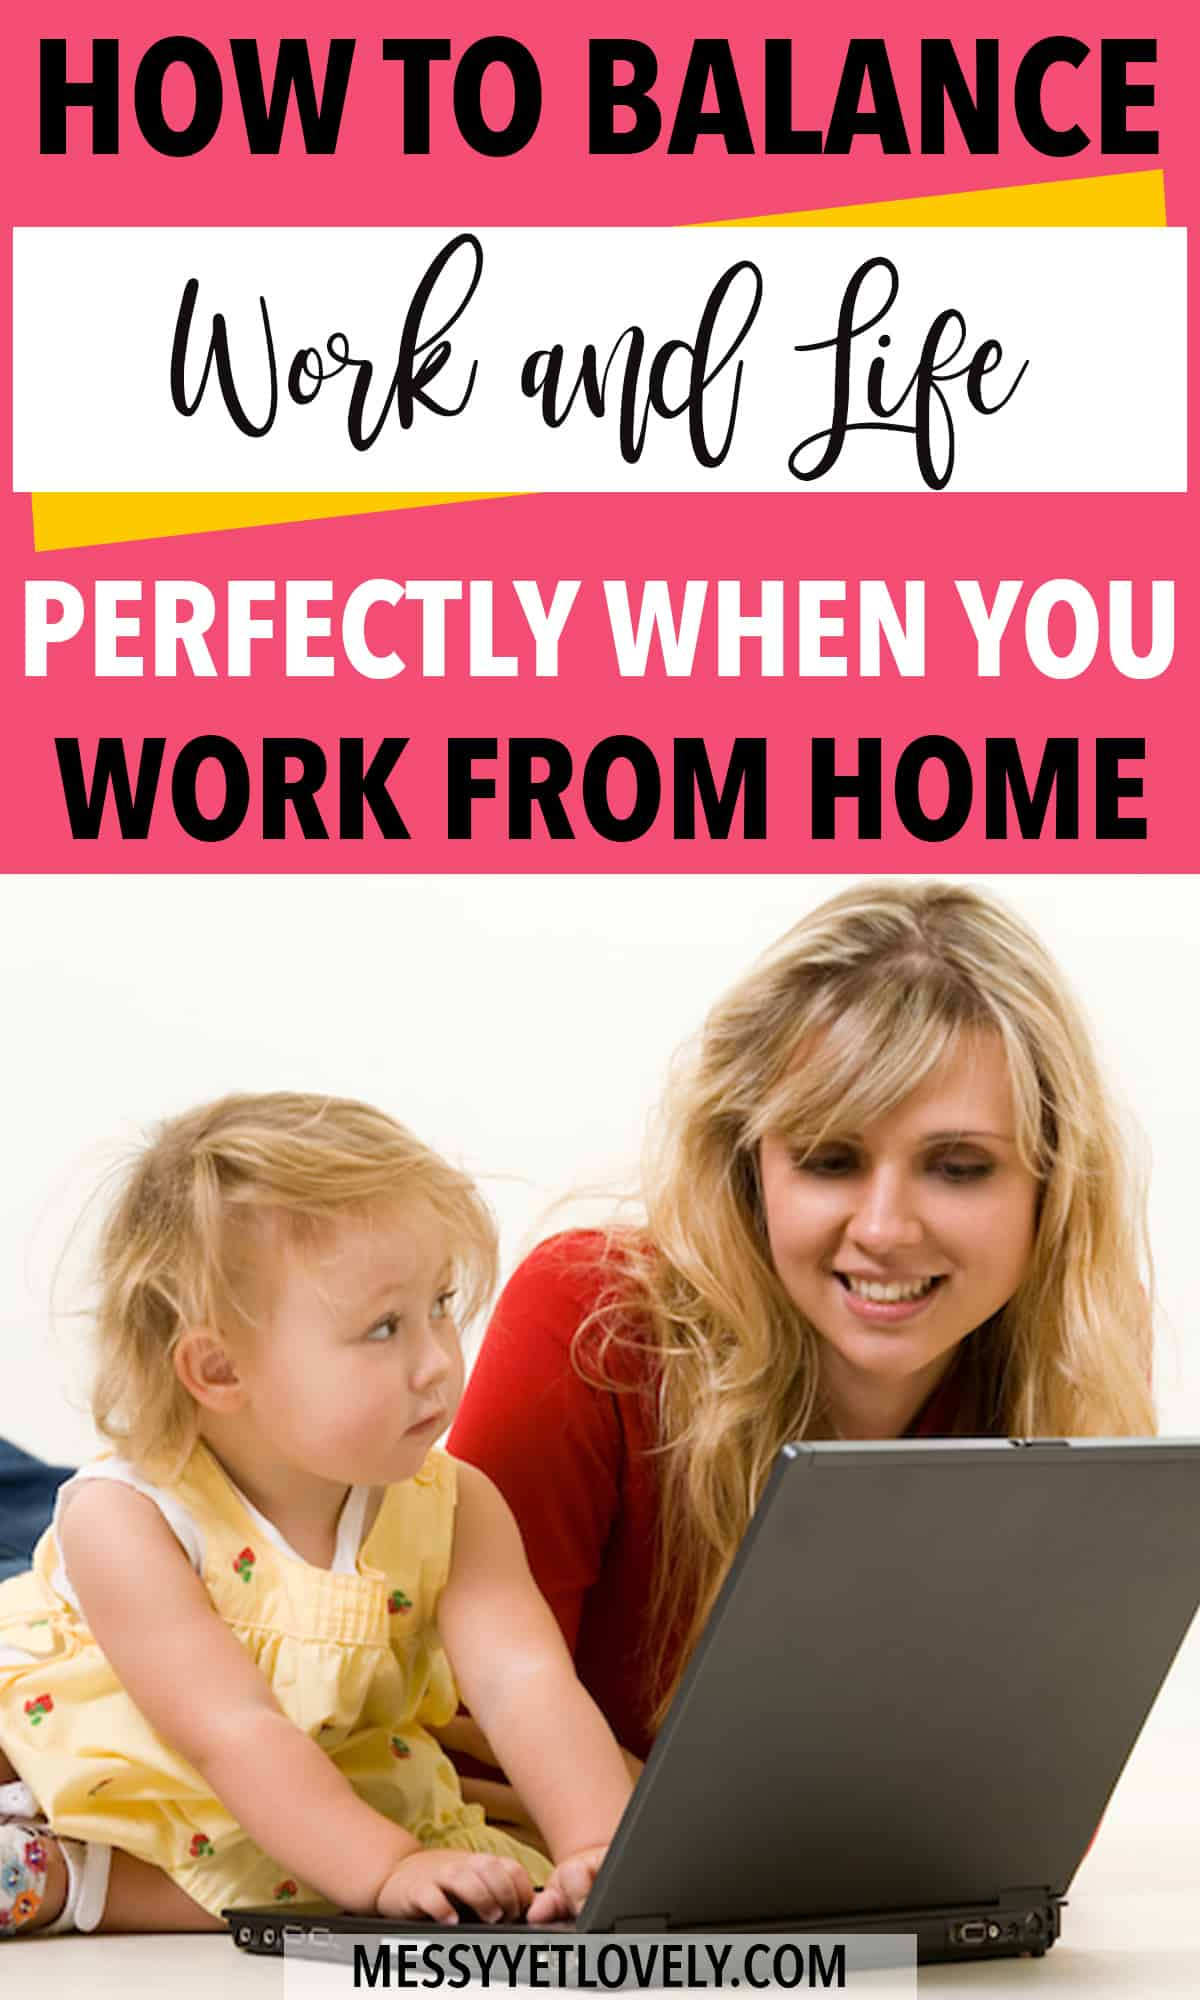 Learning time management is crucial if you want to succeed as a work-from-home mom. You can manage your work, family and life with the perfect balance if you learn to set up certain systems and routines. Here are some time management tips to balance work, kids and life when you work from home.